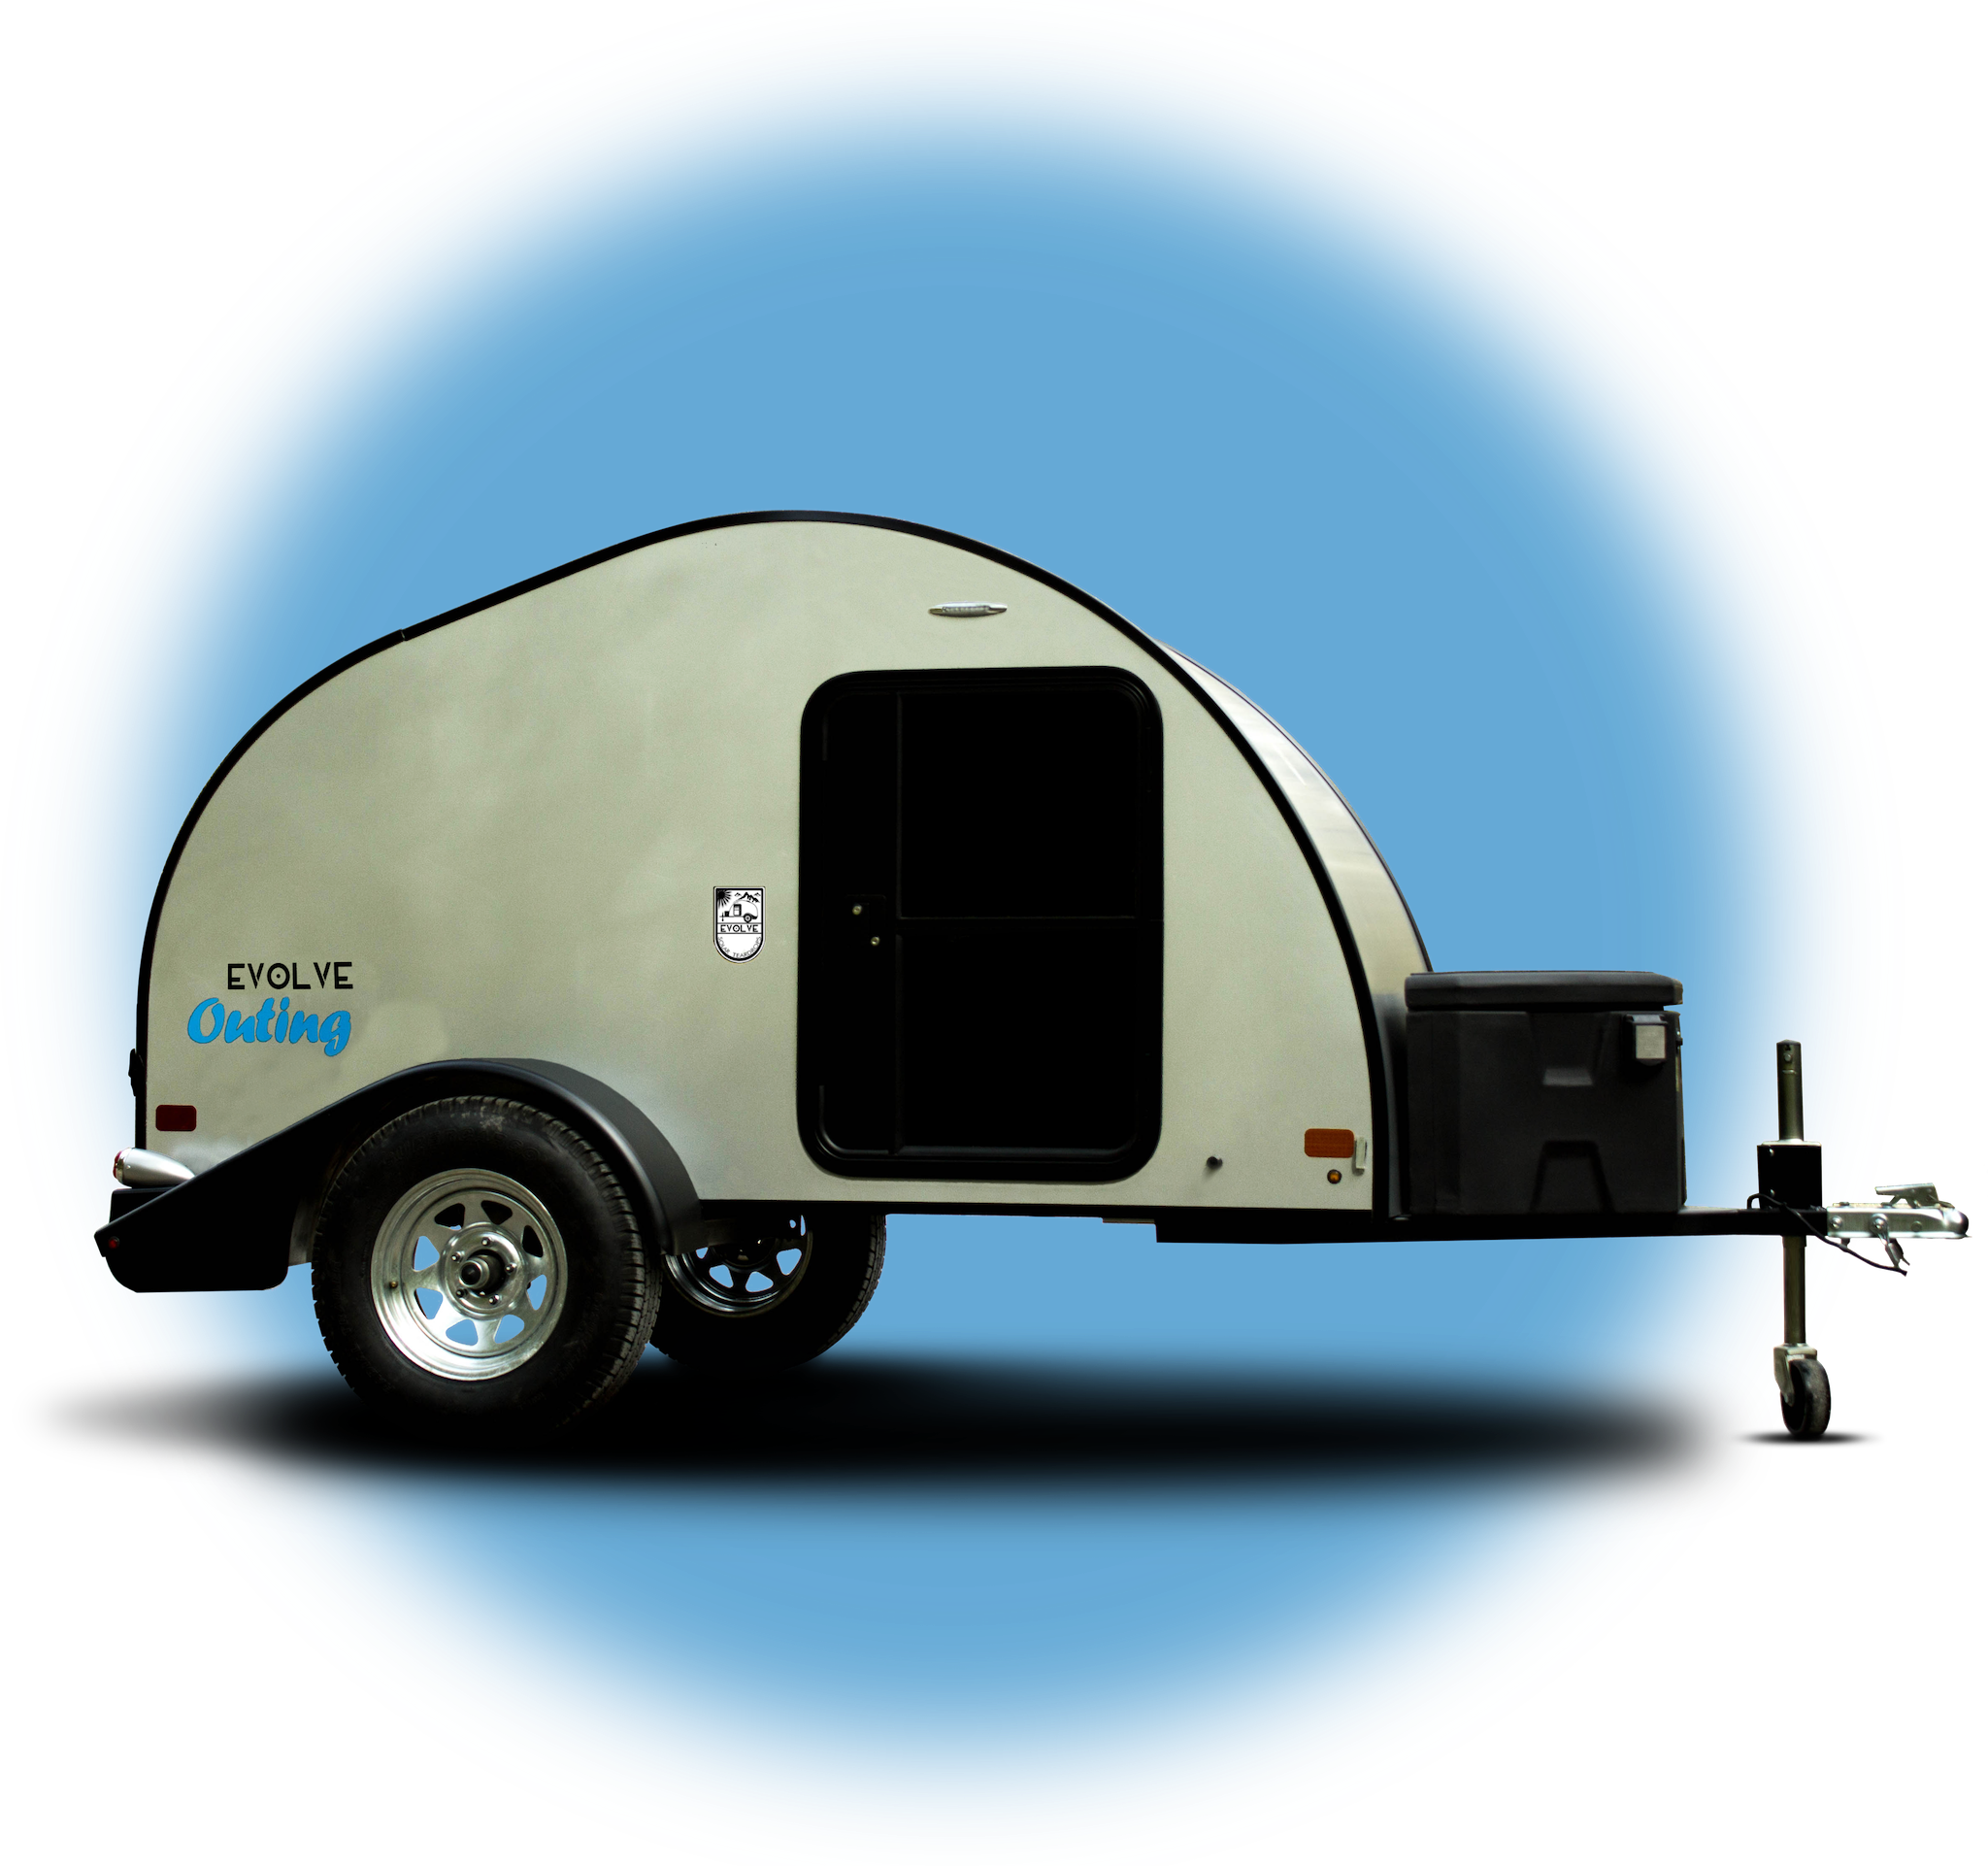 The Evolve Solar Teardrop Trailer Evolve-Outing-Icon-png